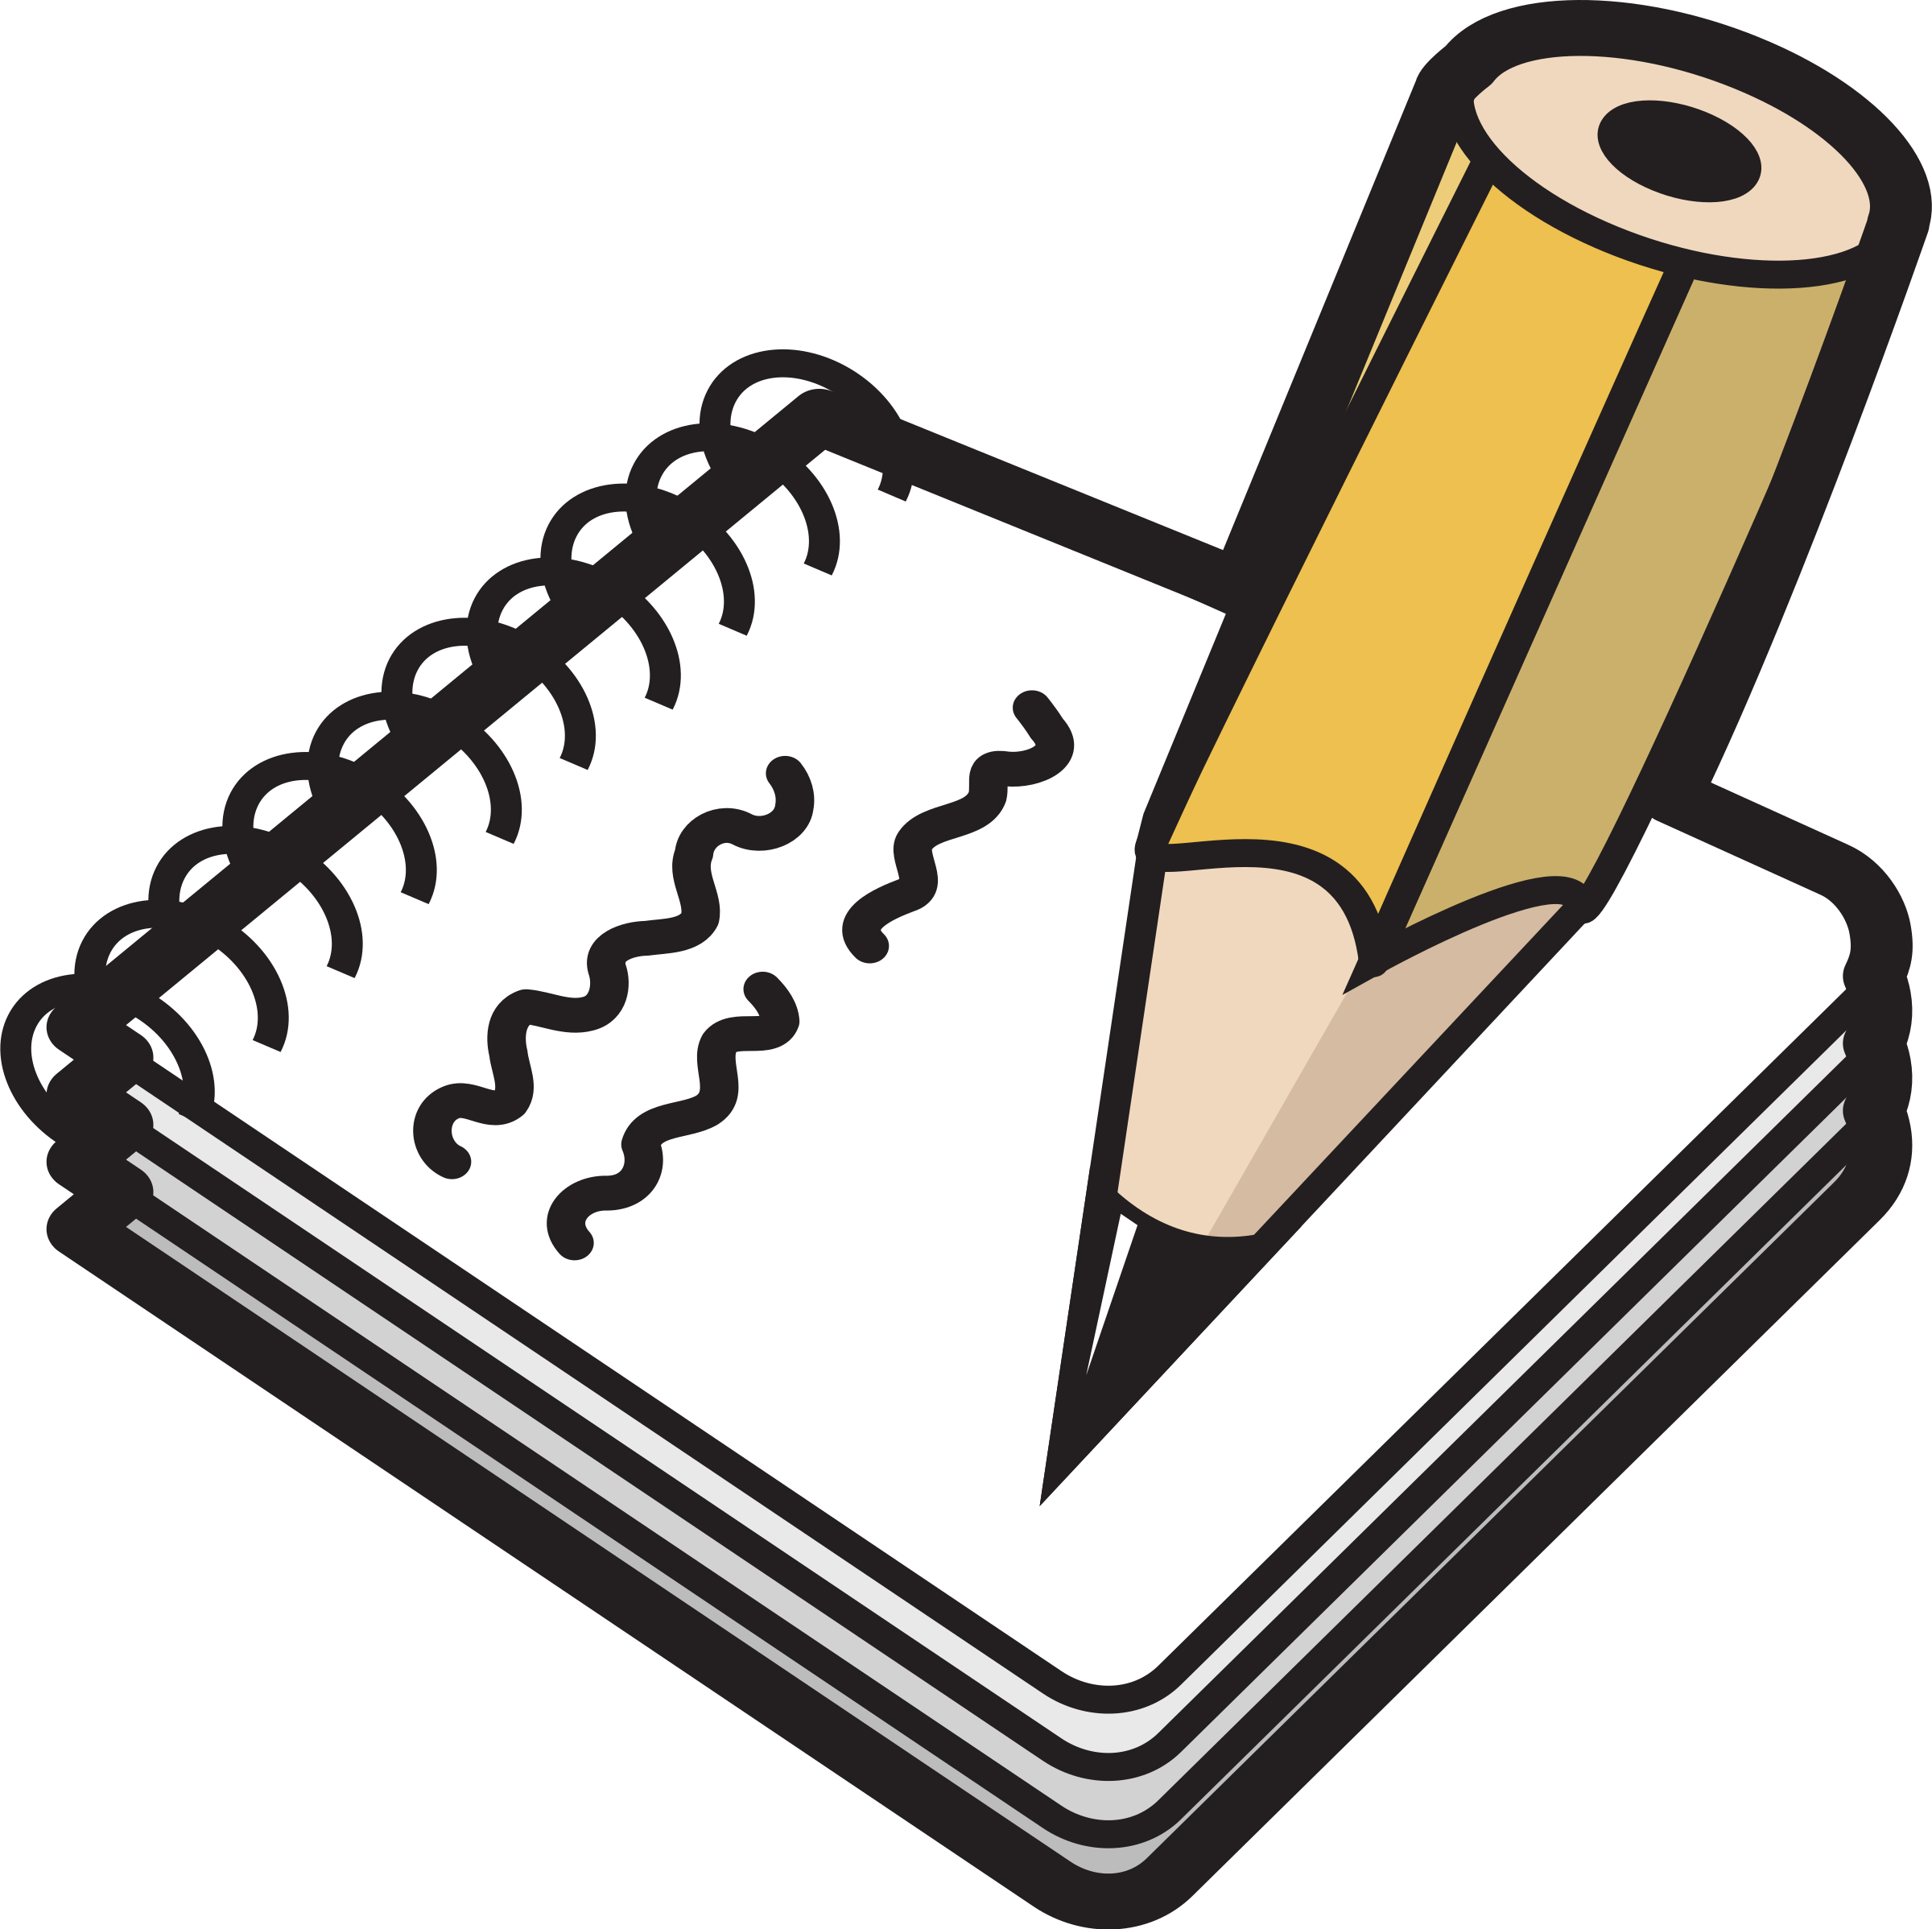 Notepad clipart sentence, Notepad sentence Transparent FREE for ...